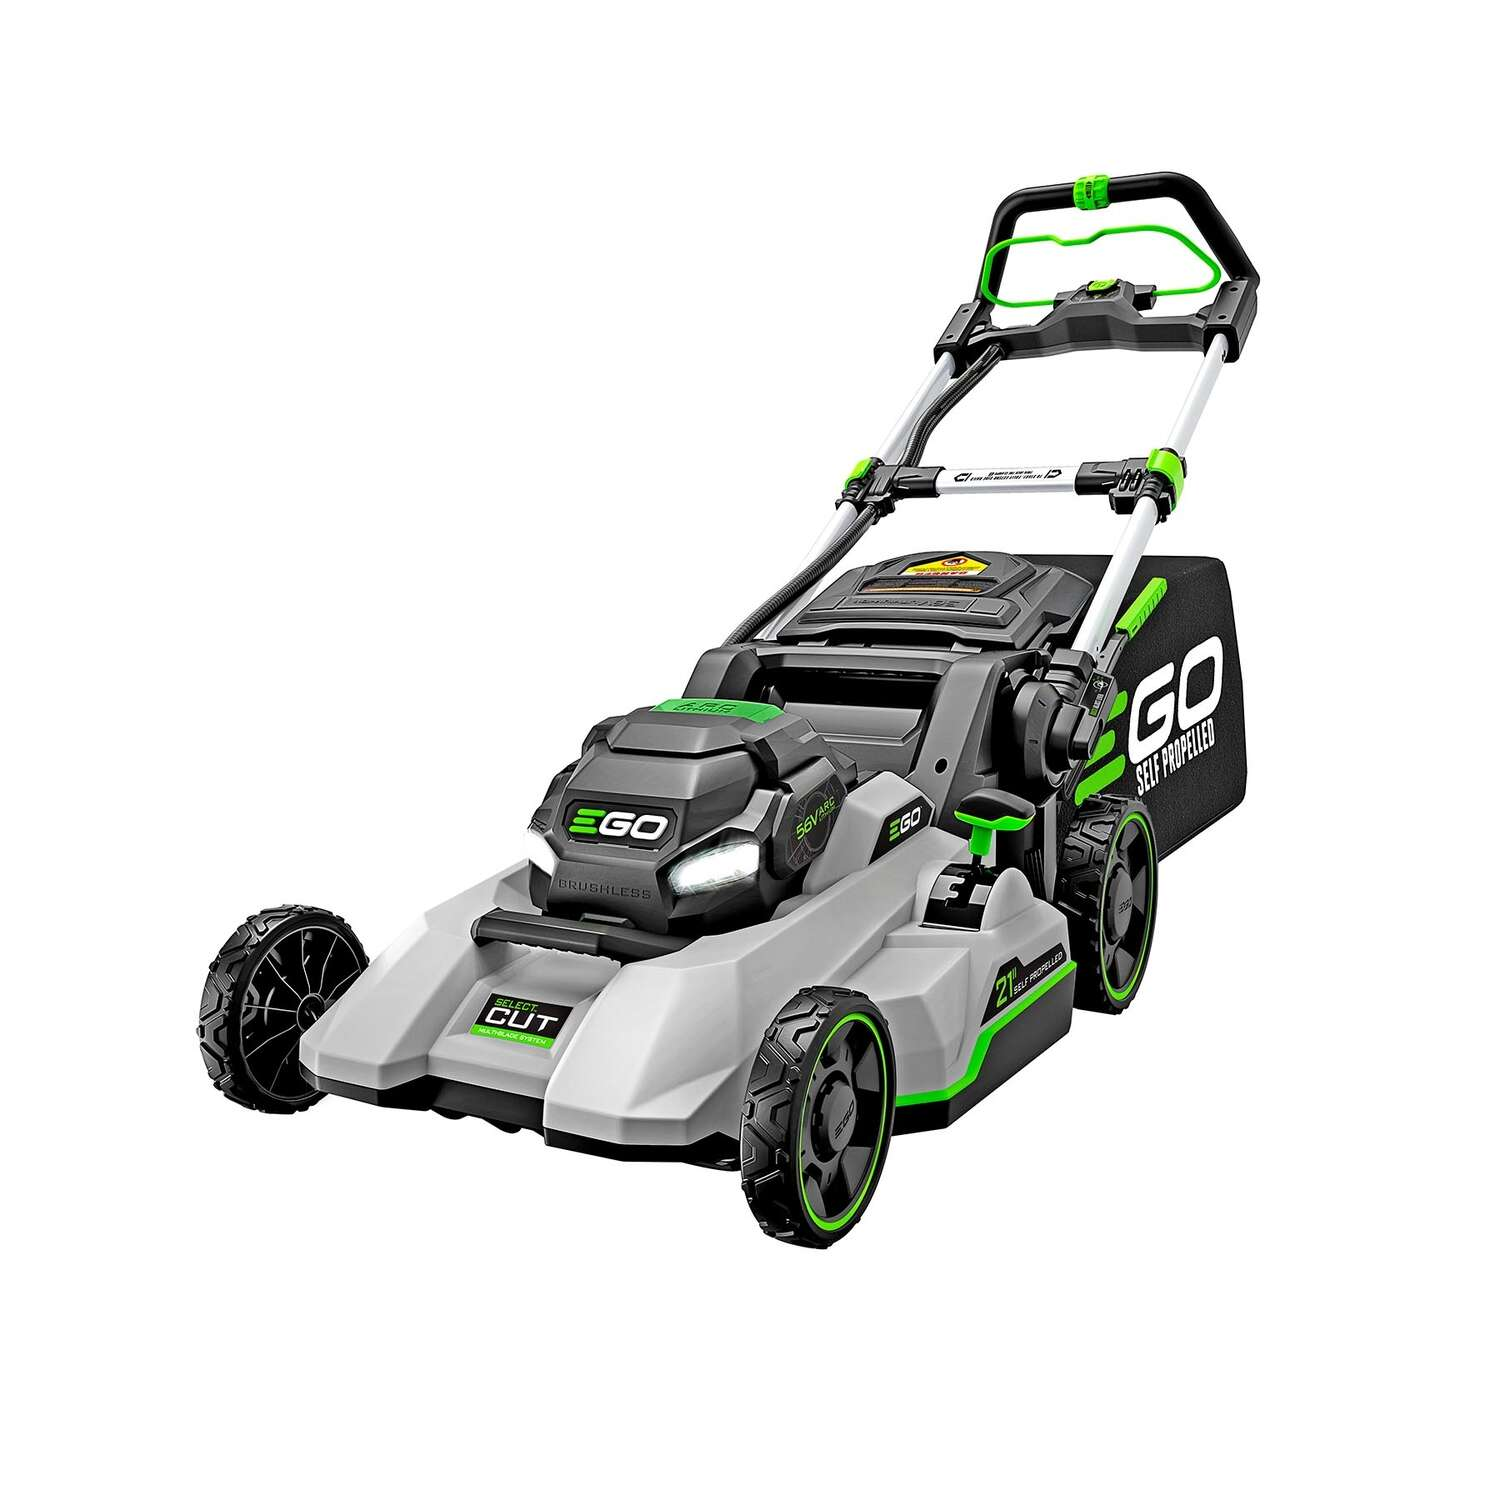 EGO Power+ Select Cut LM2135SP 21 in. 56 volt Battery Self-Propelled Lawn Mower Kit (Battery &